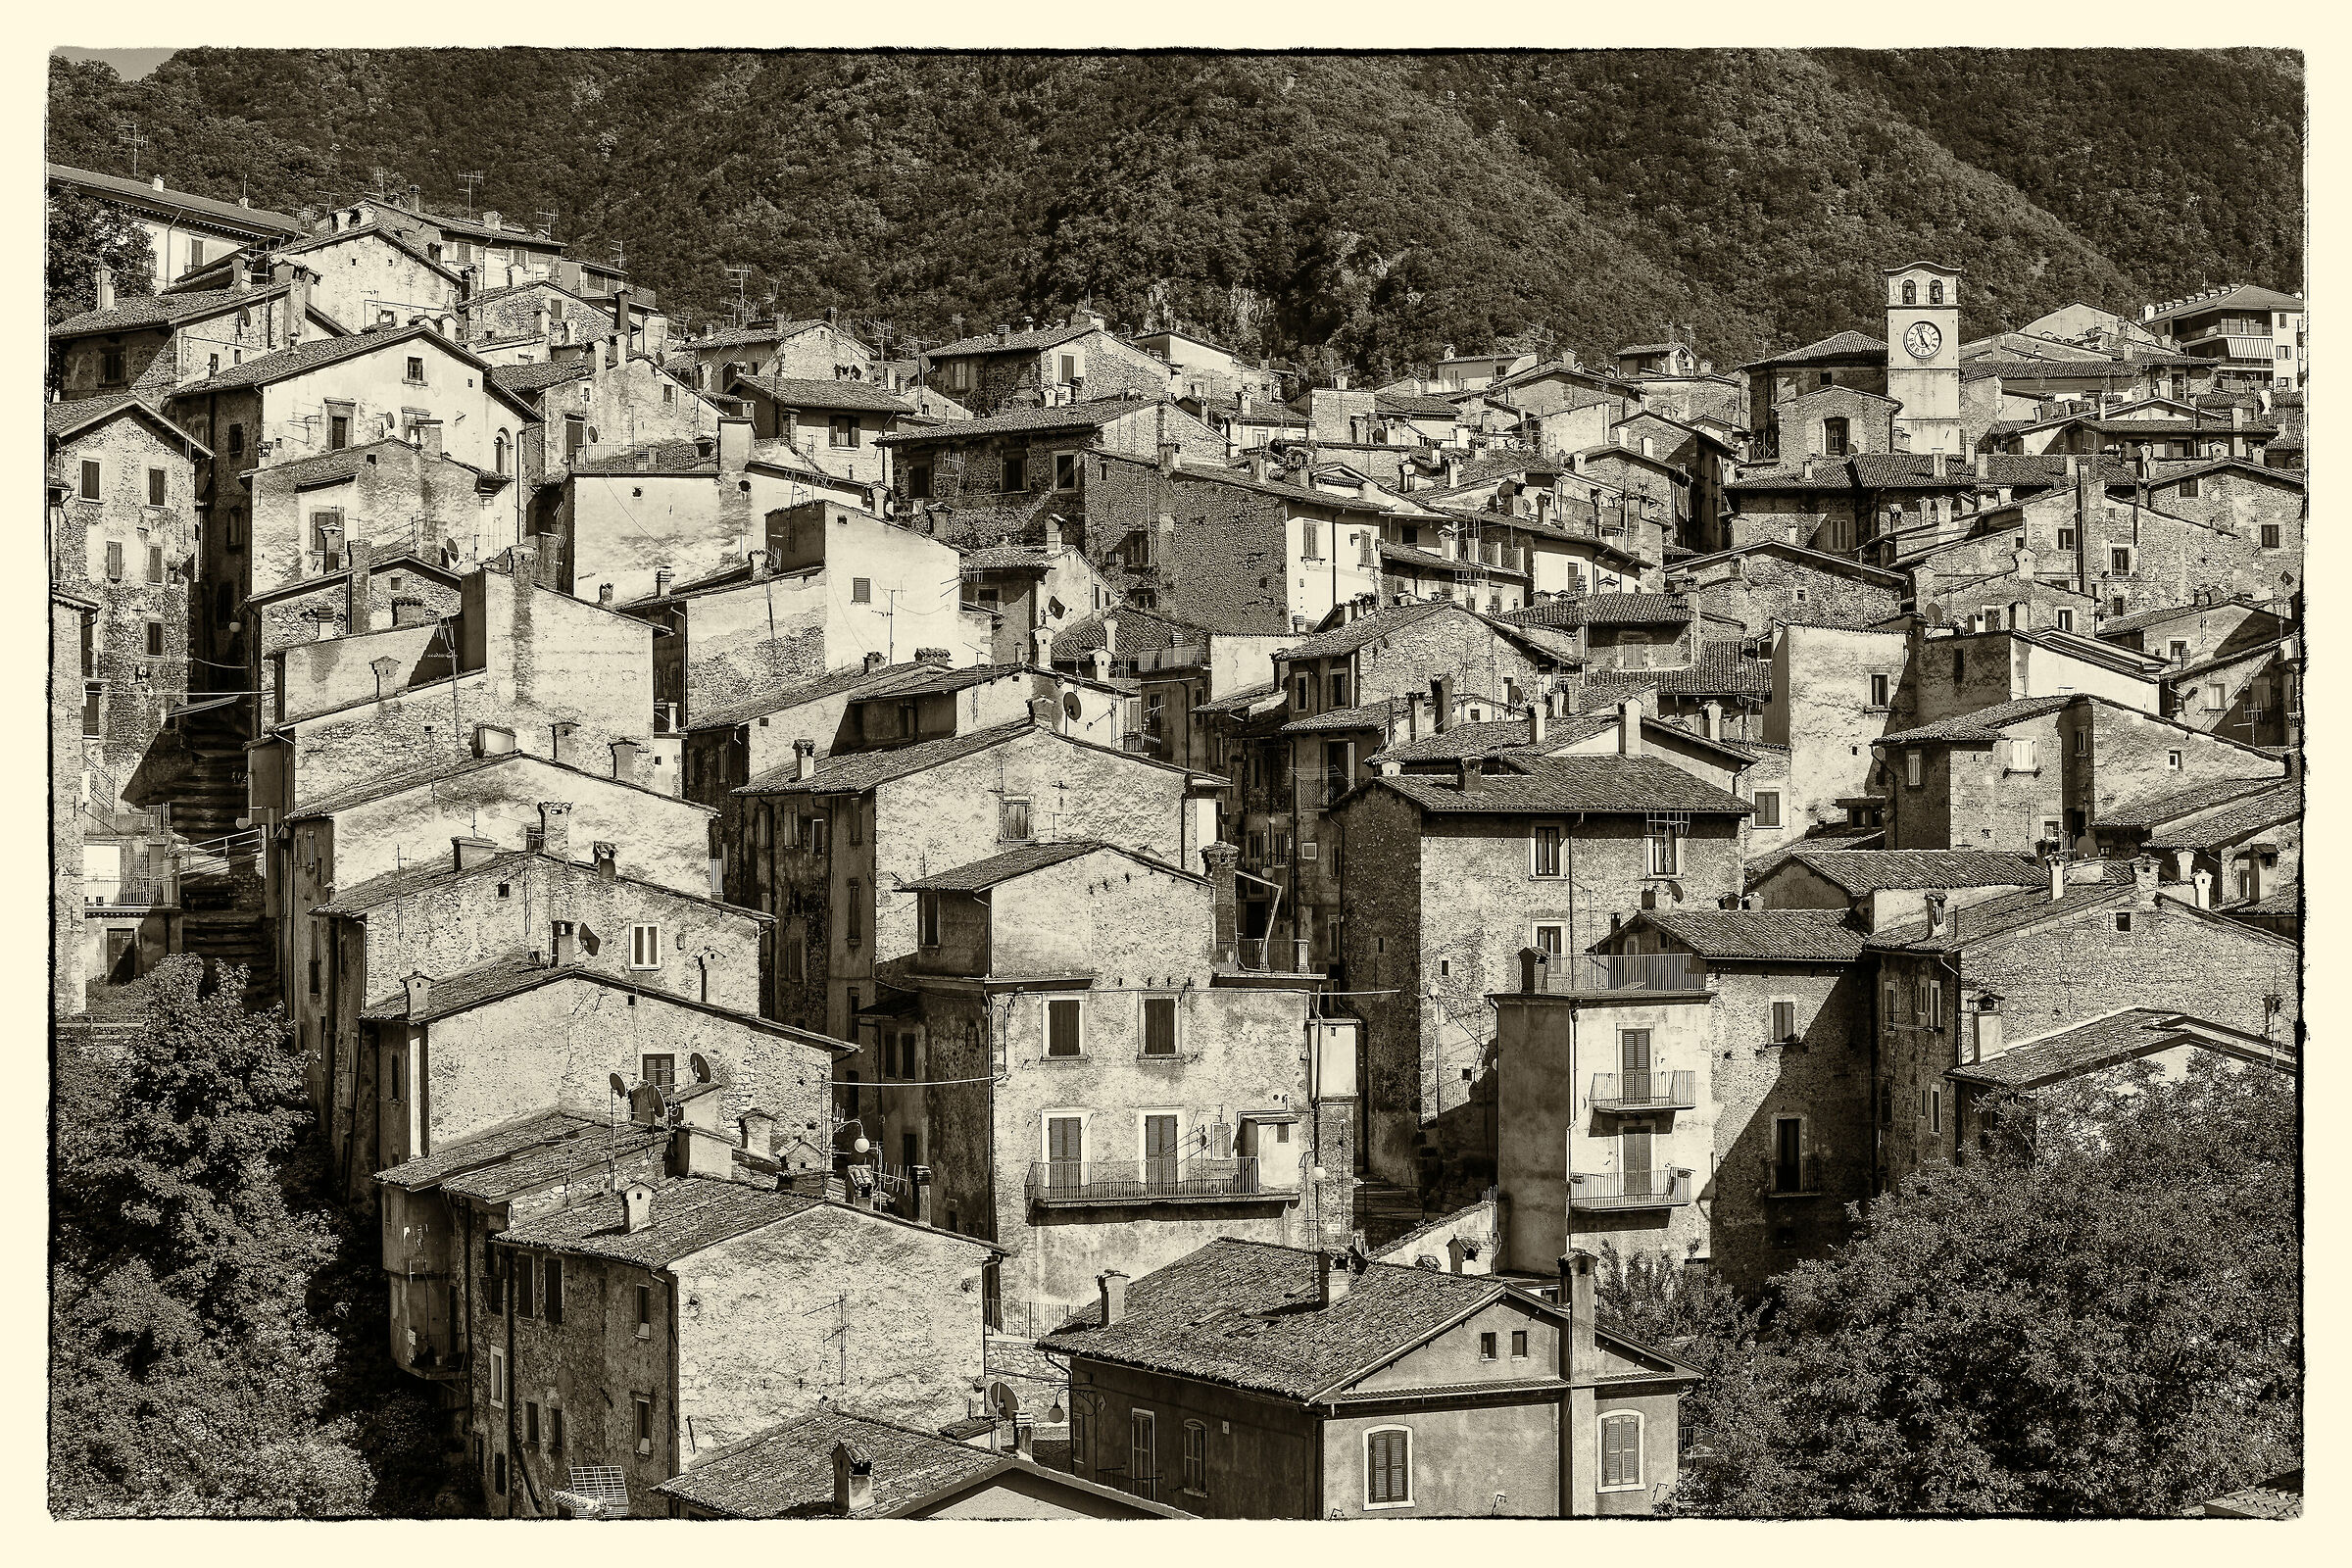 Passing by Scanno (Aq)...